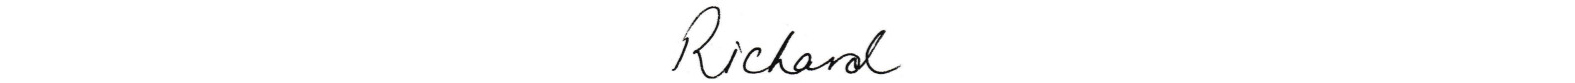 Richard-name-signature.jpg